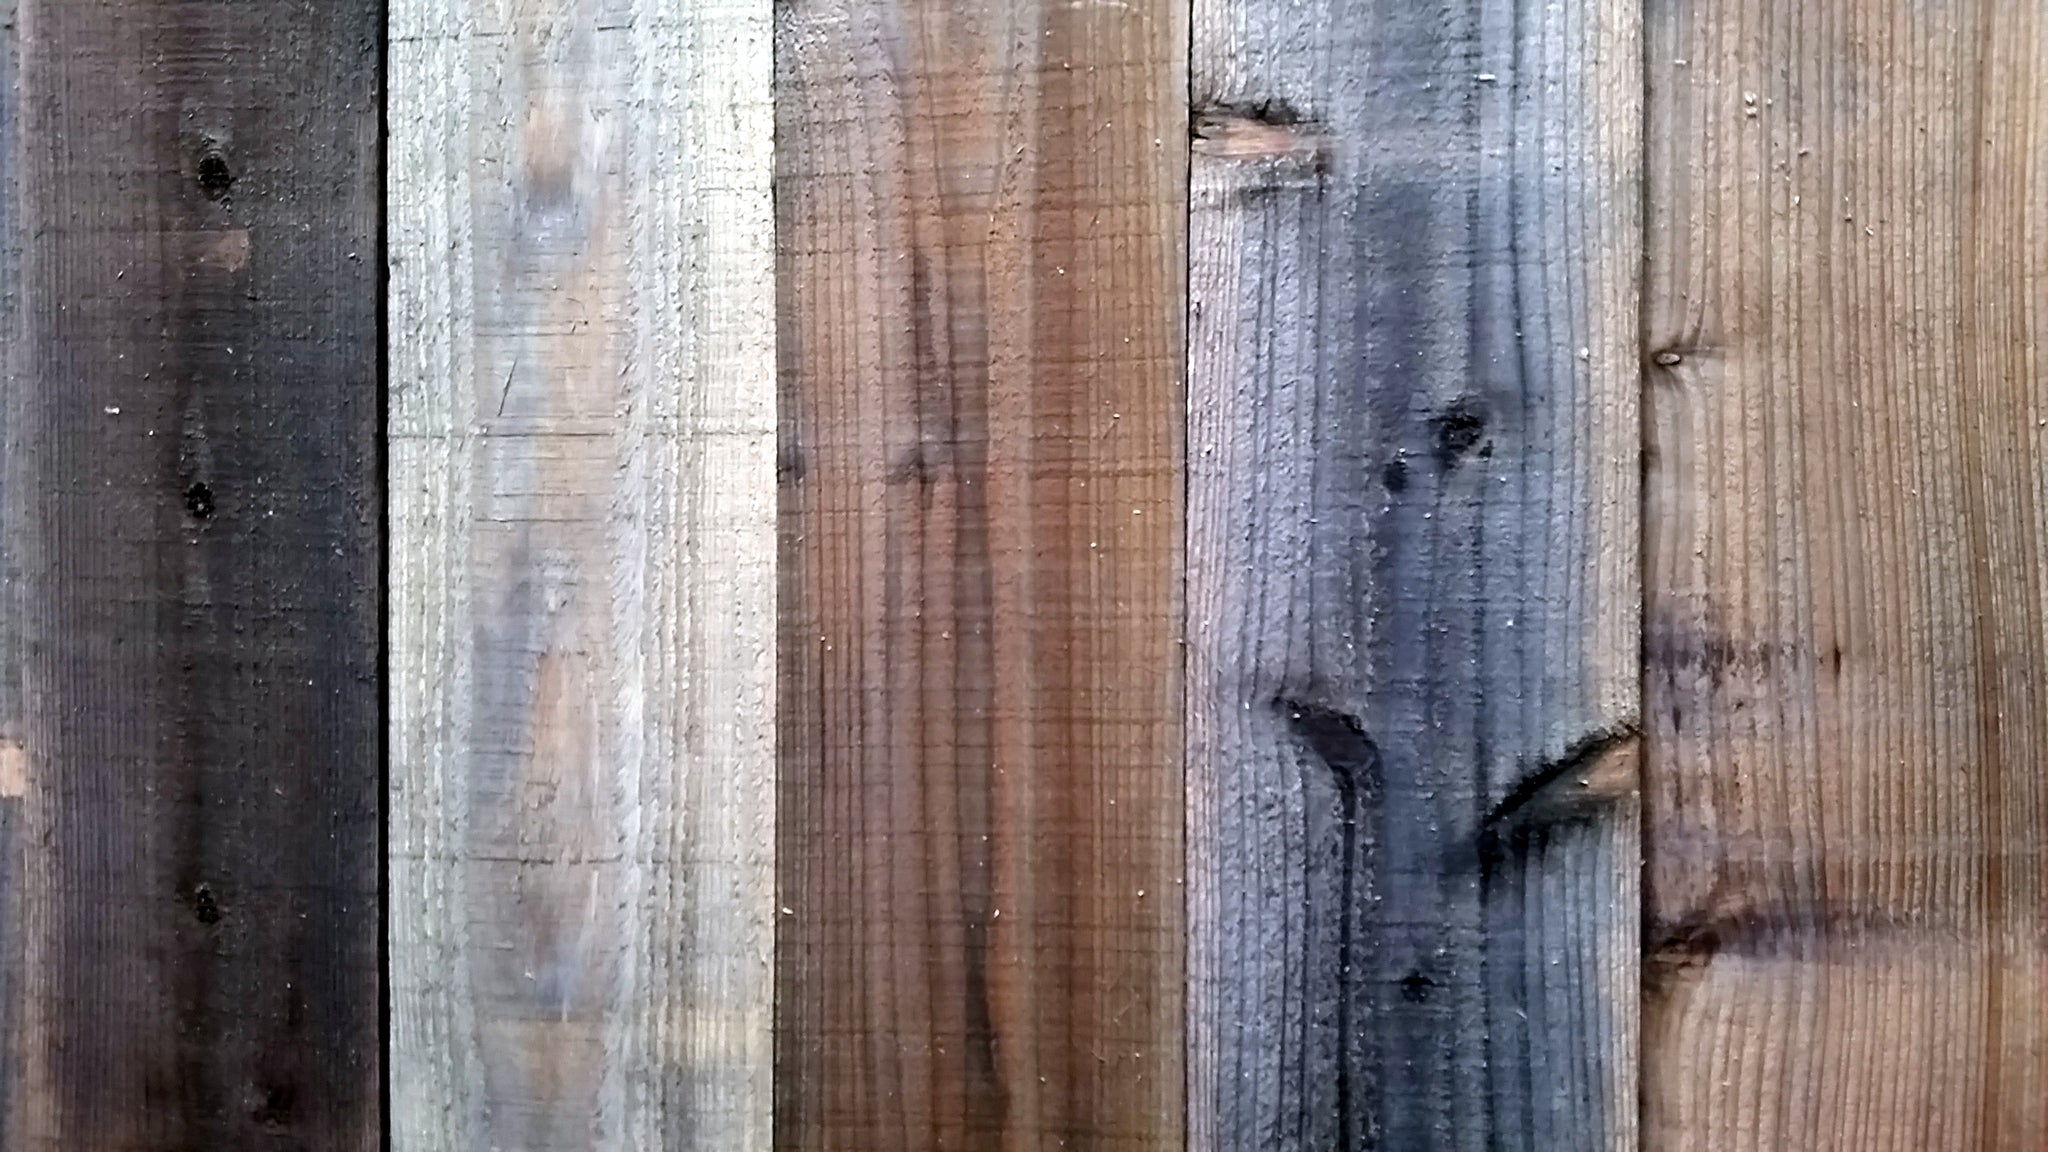 panel wood paneling estates lumber selection simple billion reclaimed old barns walls barn photographs